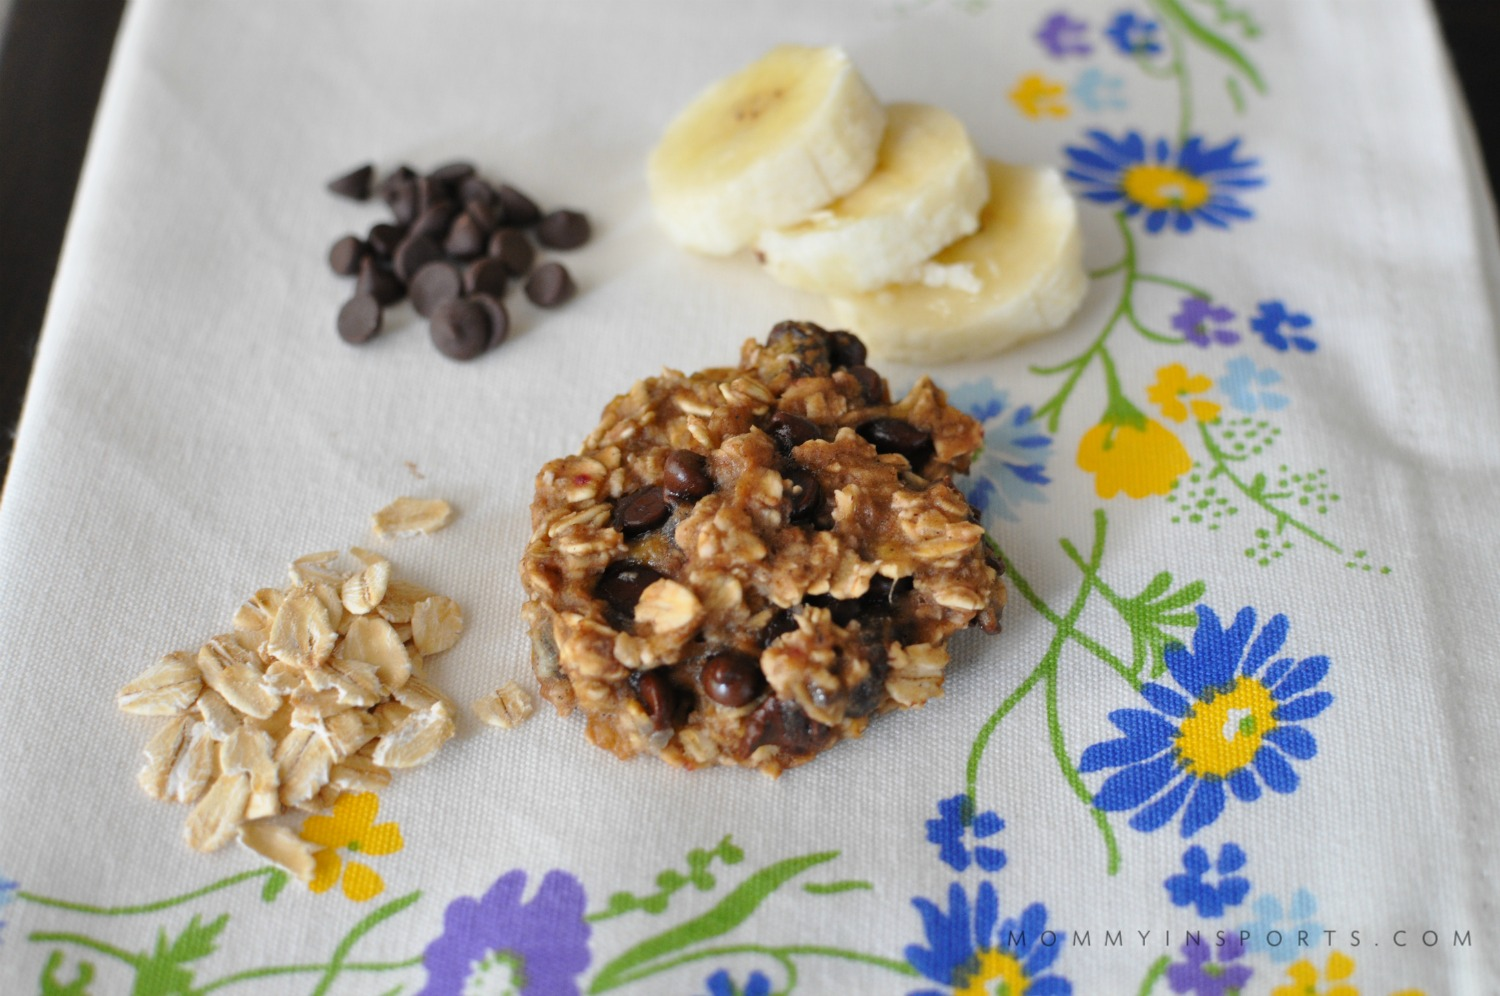 Looking for an easy recipe to make with the kids? Try these simple yet delish 3 ingredient cookies! No measuring, no mixers, no fuss!